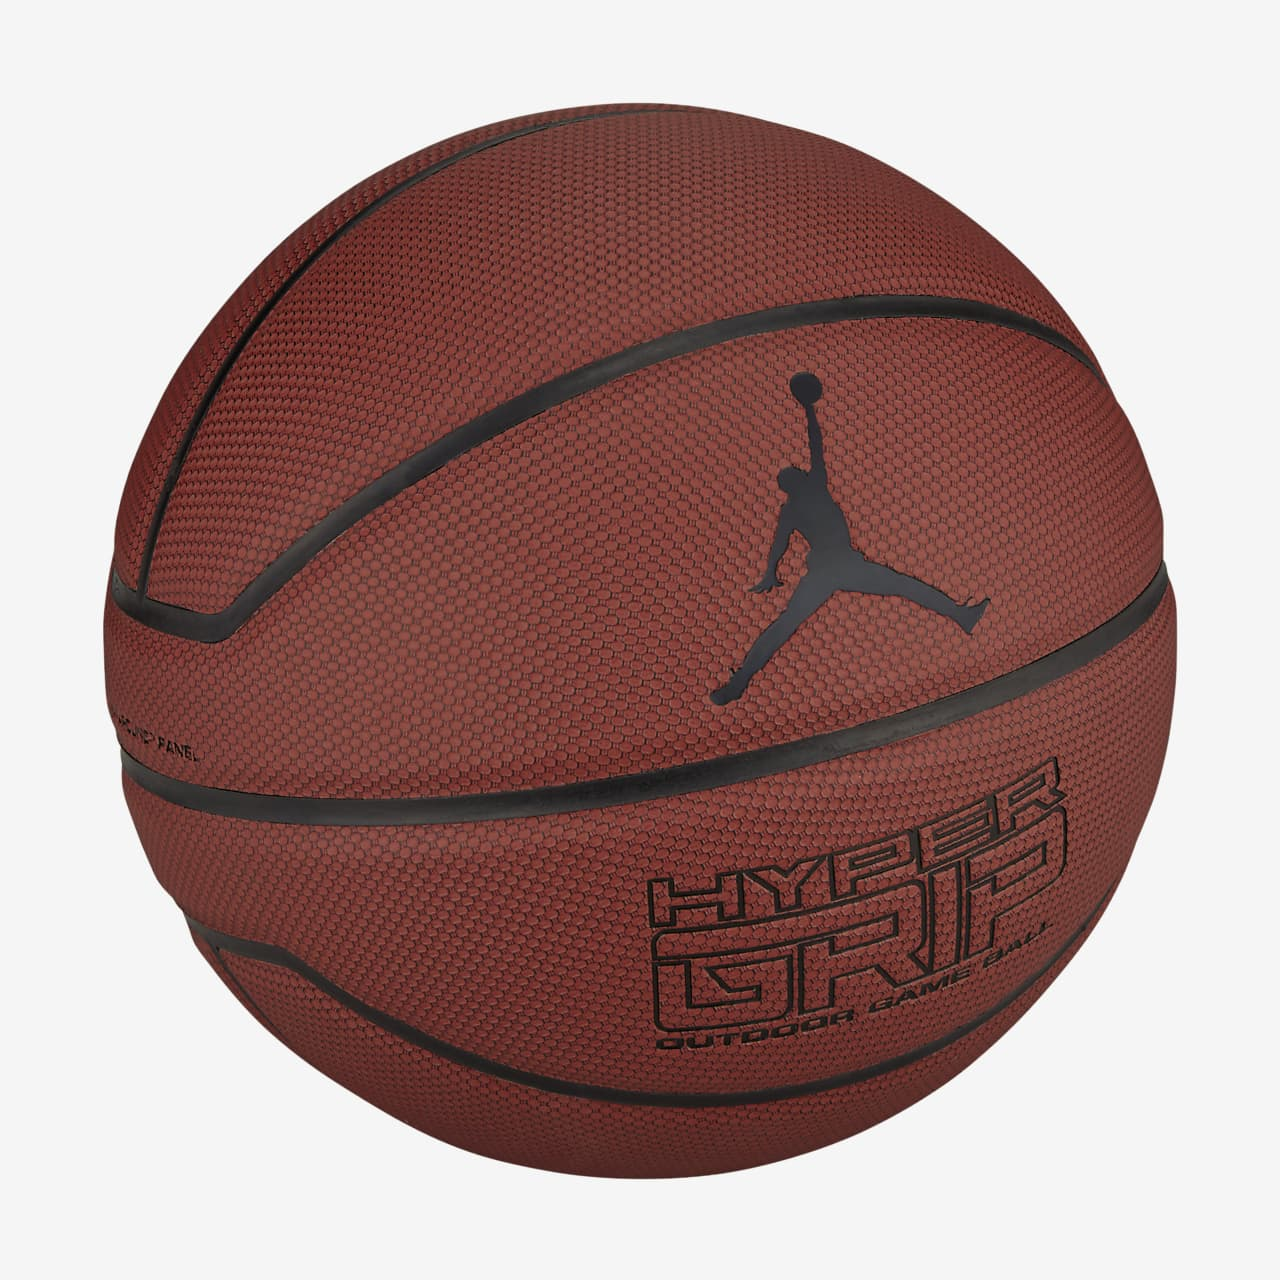 Jordan HyperGrip 4P Basketbal (maat 7)